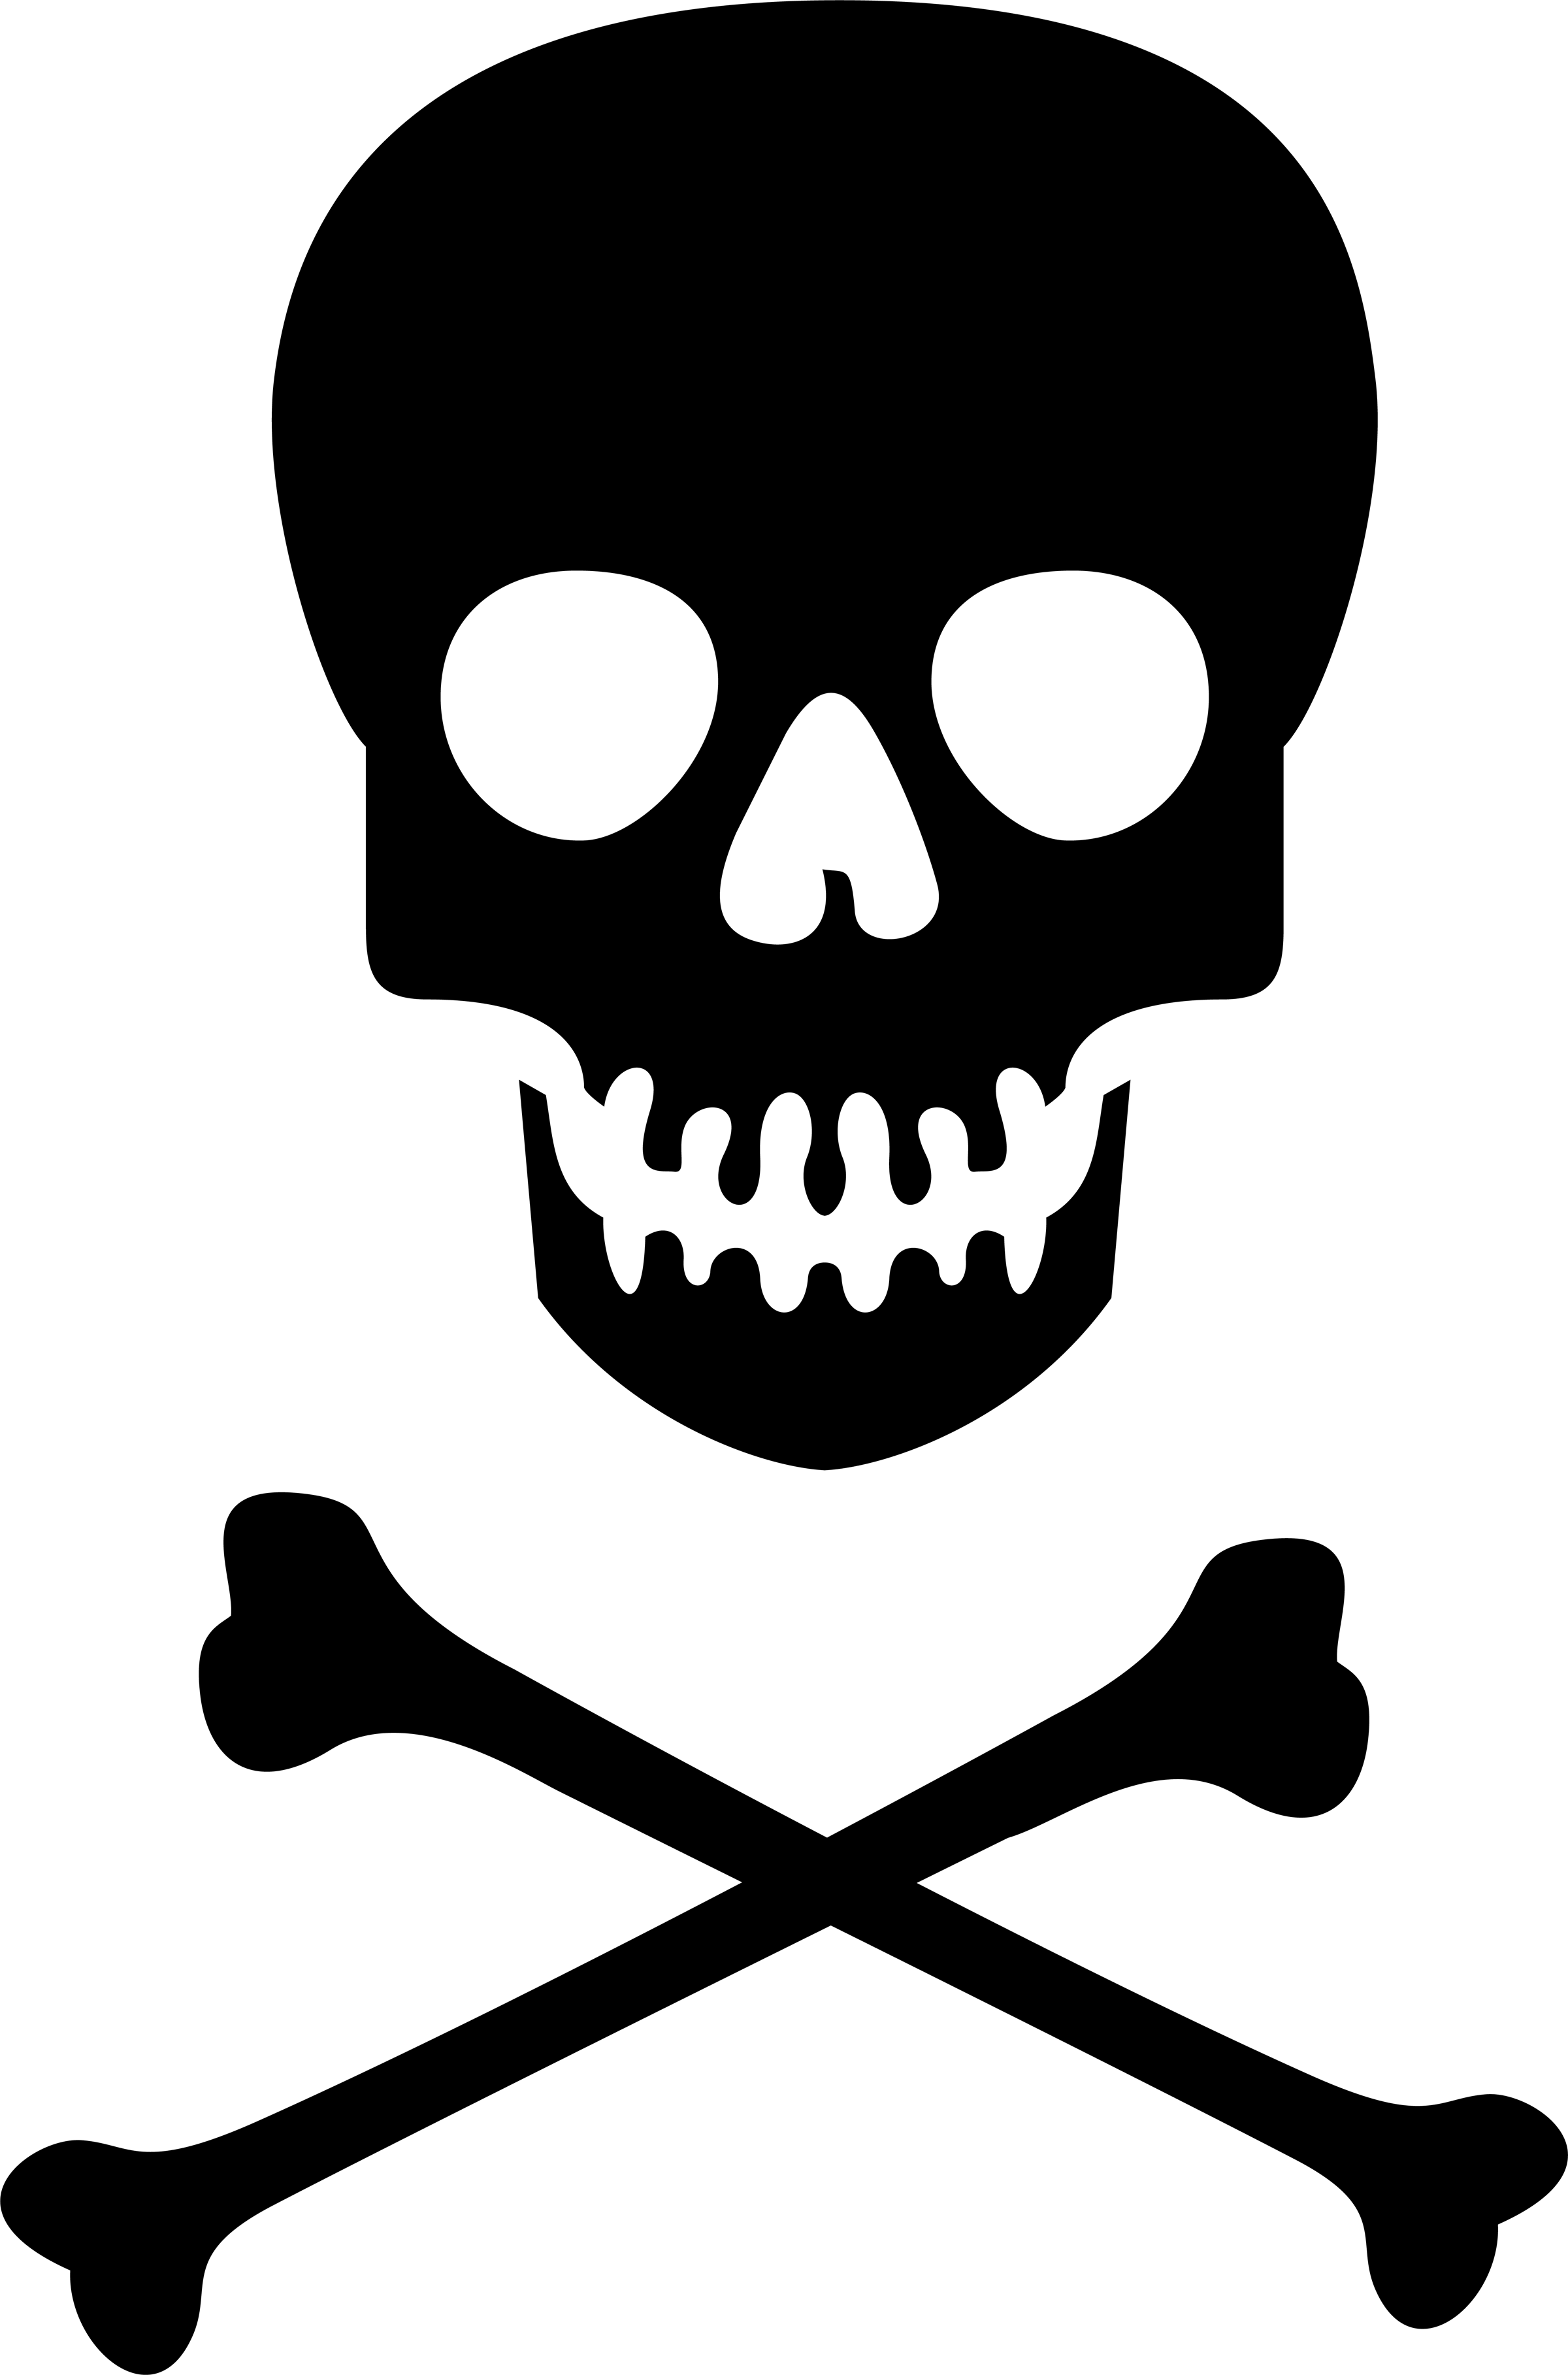 Skull And Crossbones Clipart Best